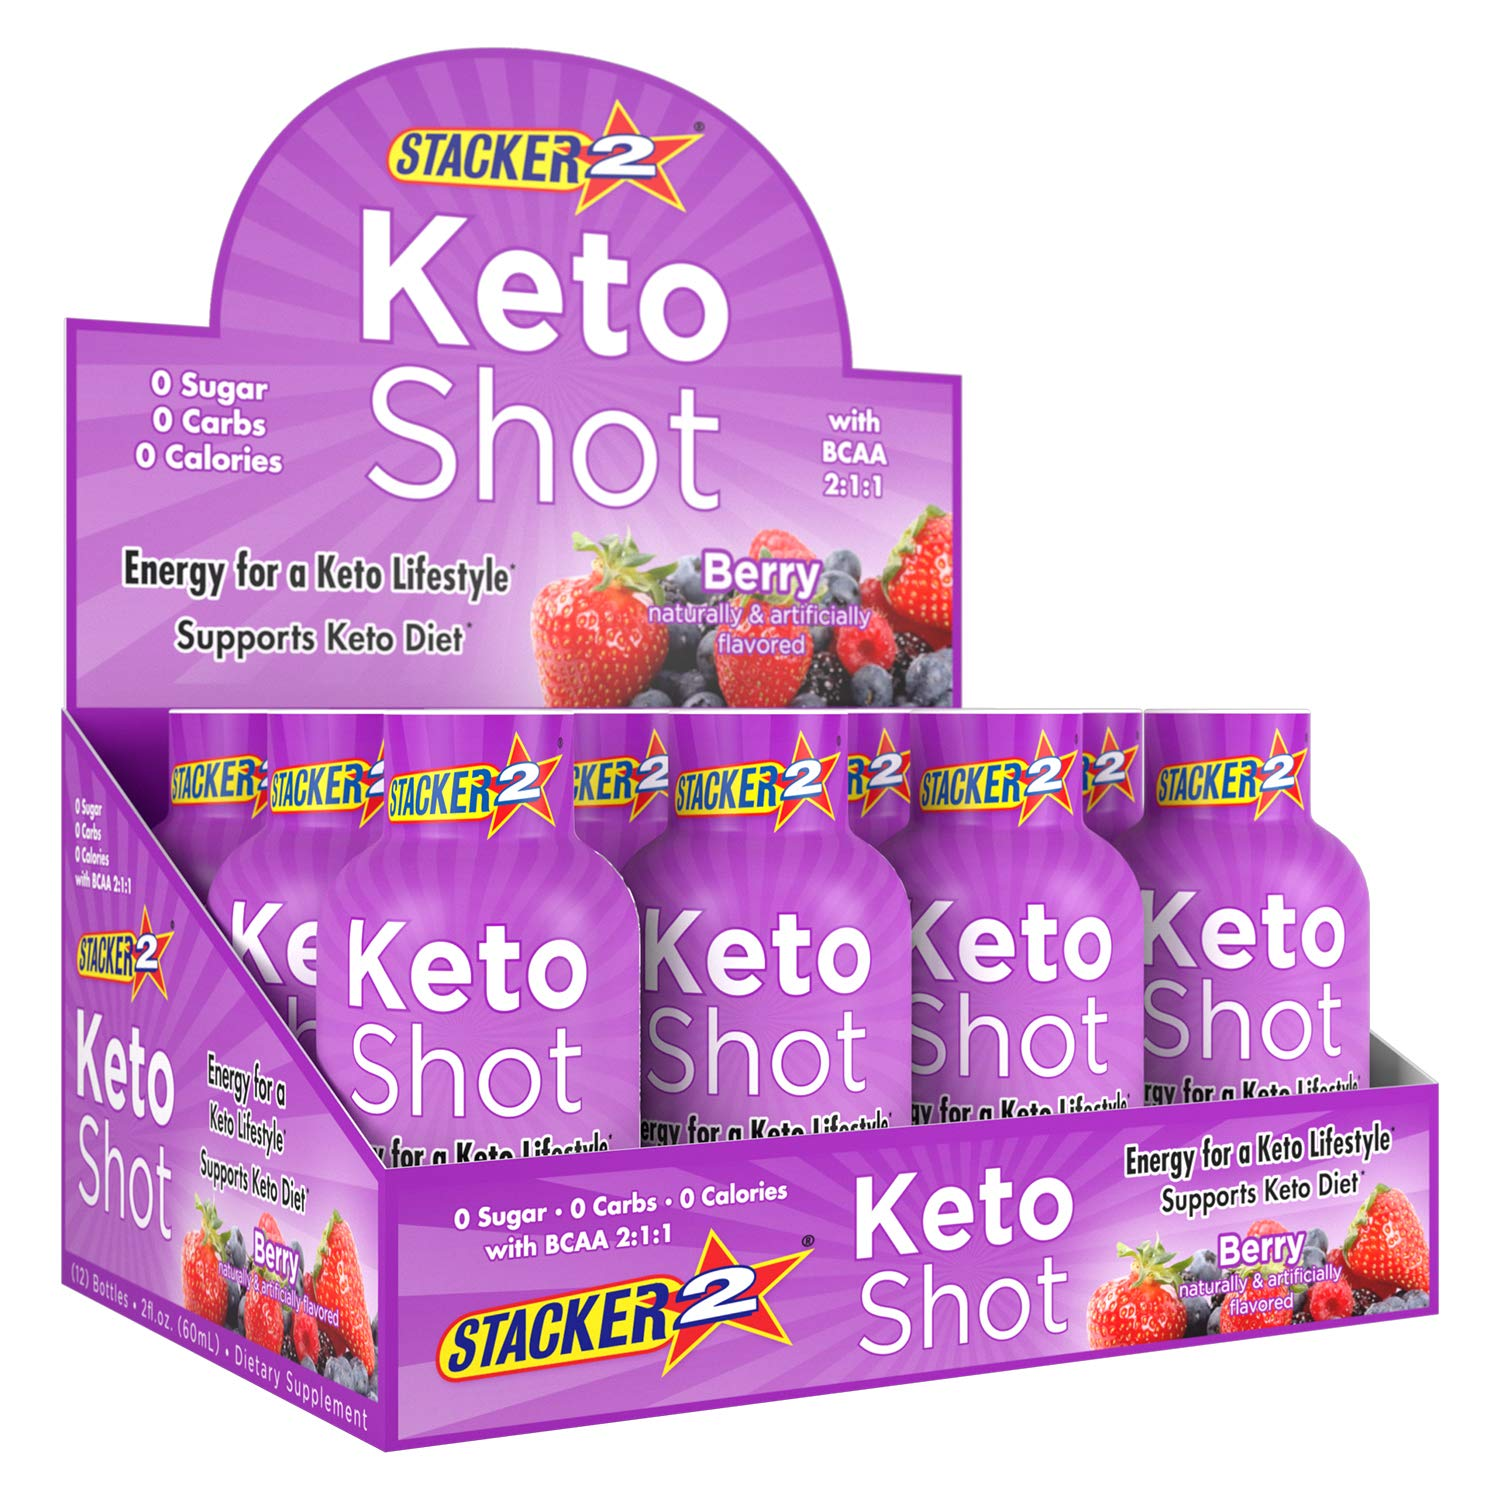 Stacker 2 Keto Diet Support Energy Shots Pre Workout Supplement 2 fl. oz. (Pack of 12) Berry by STACKER 2